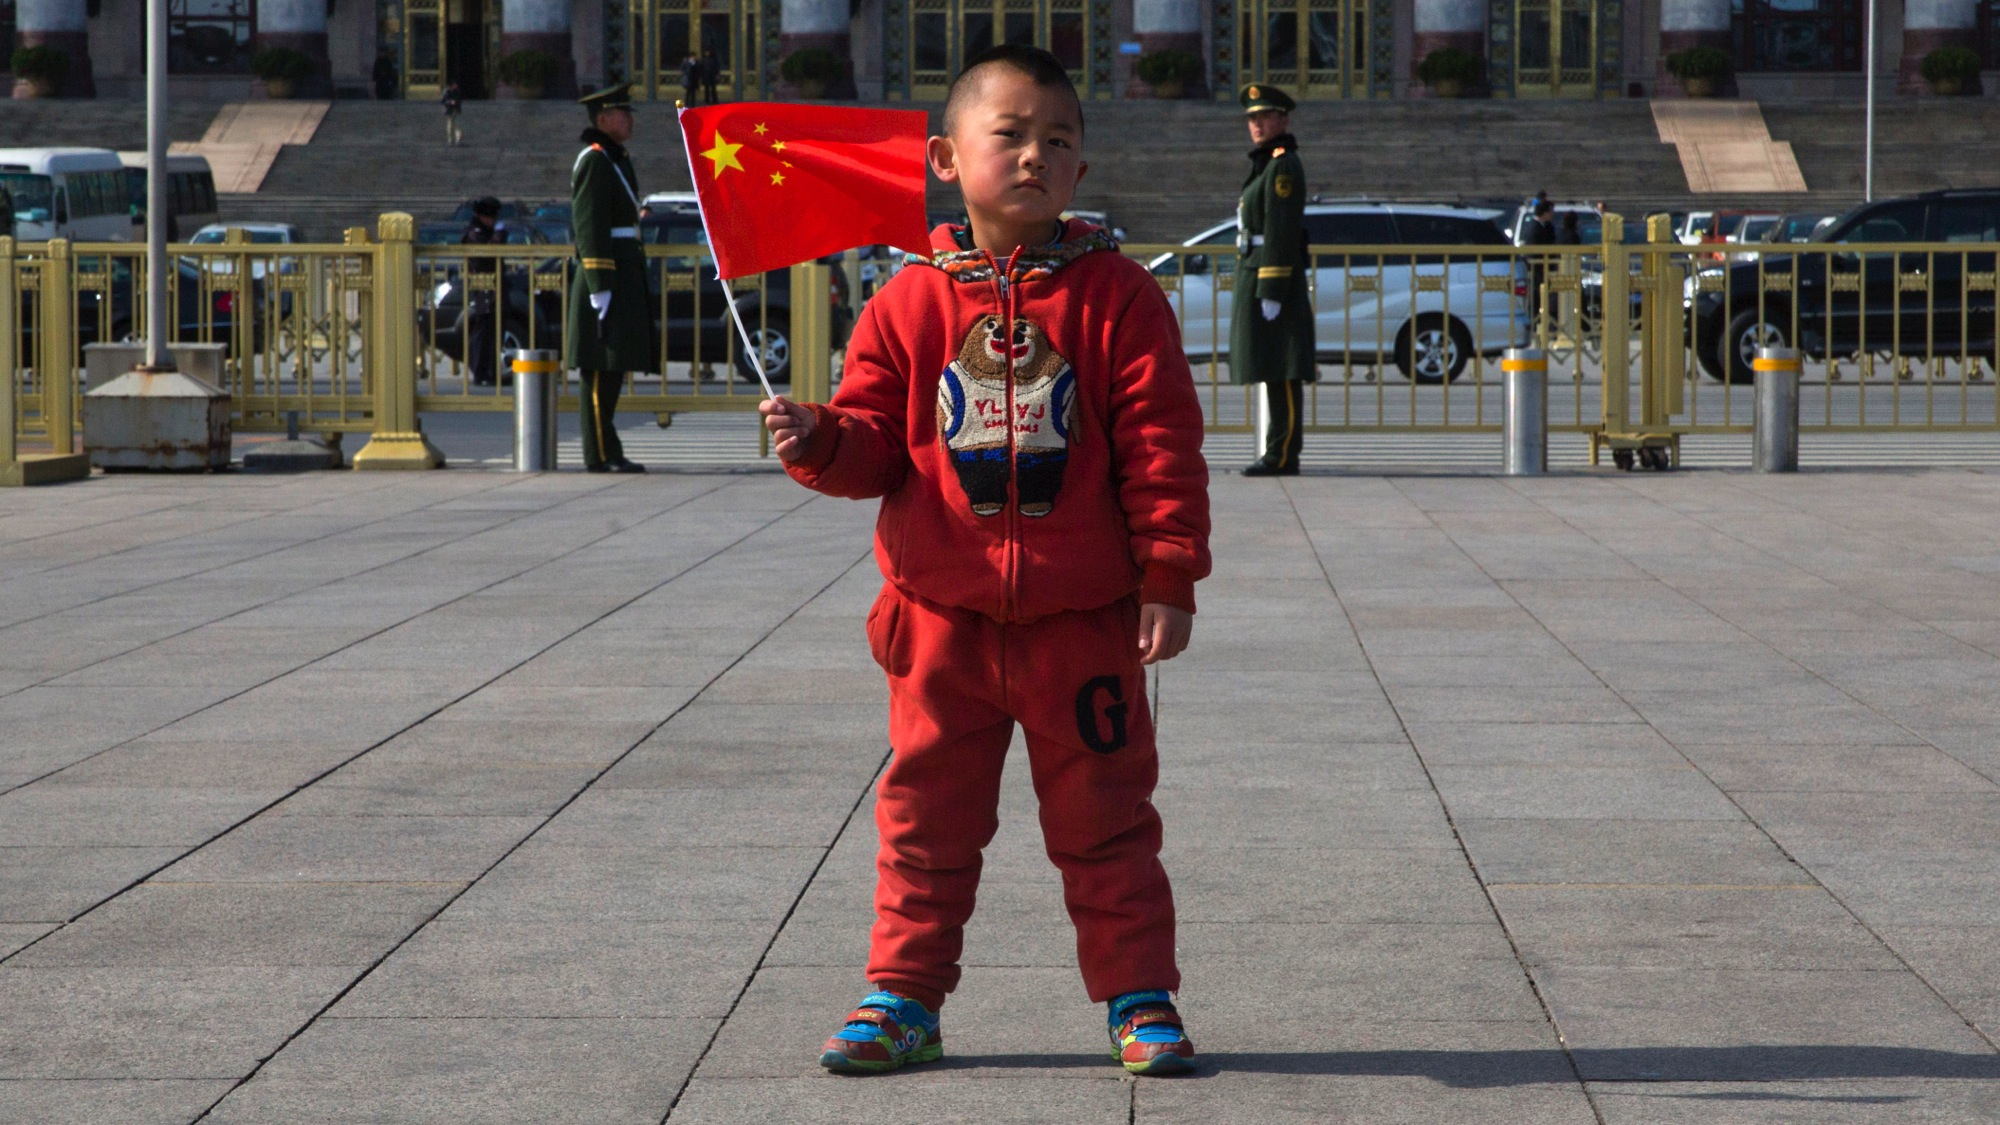 A child holds a Chinese national flag as he poses for photos in front of the Great Hall of the People in Beijing, Wednesday, March 4, 2015. Thousands of delegates from all over the country are in the Chinese capital this week to attend the Chinese People's Political Consultative Conference and the National People's Congress. (AP Photo/Ng Han Guan)